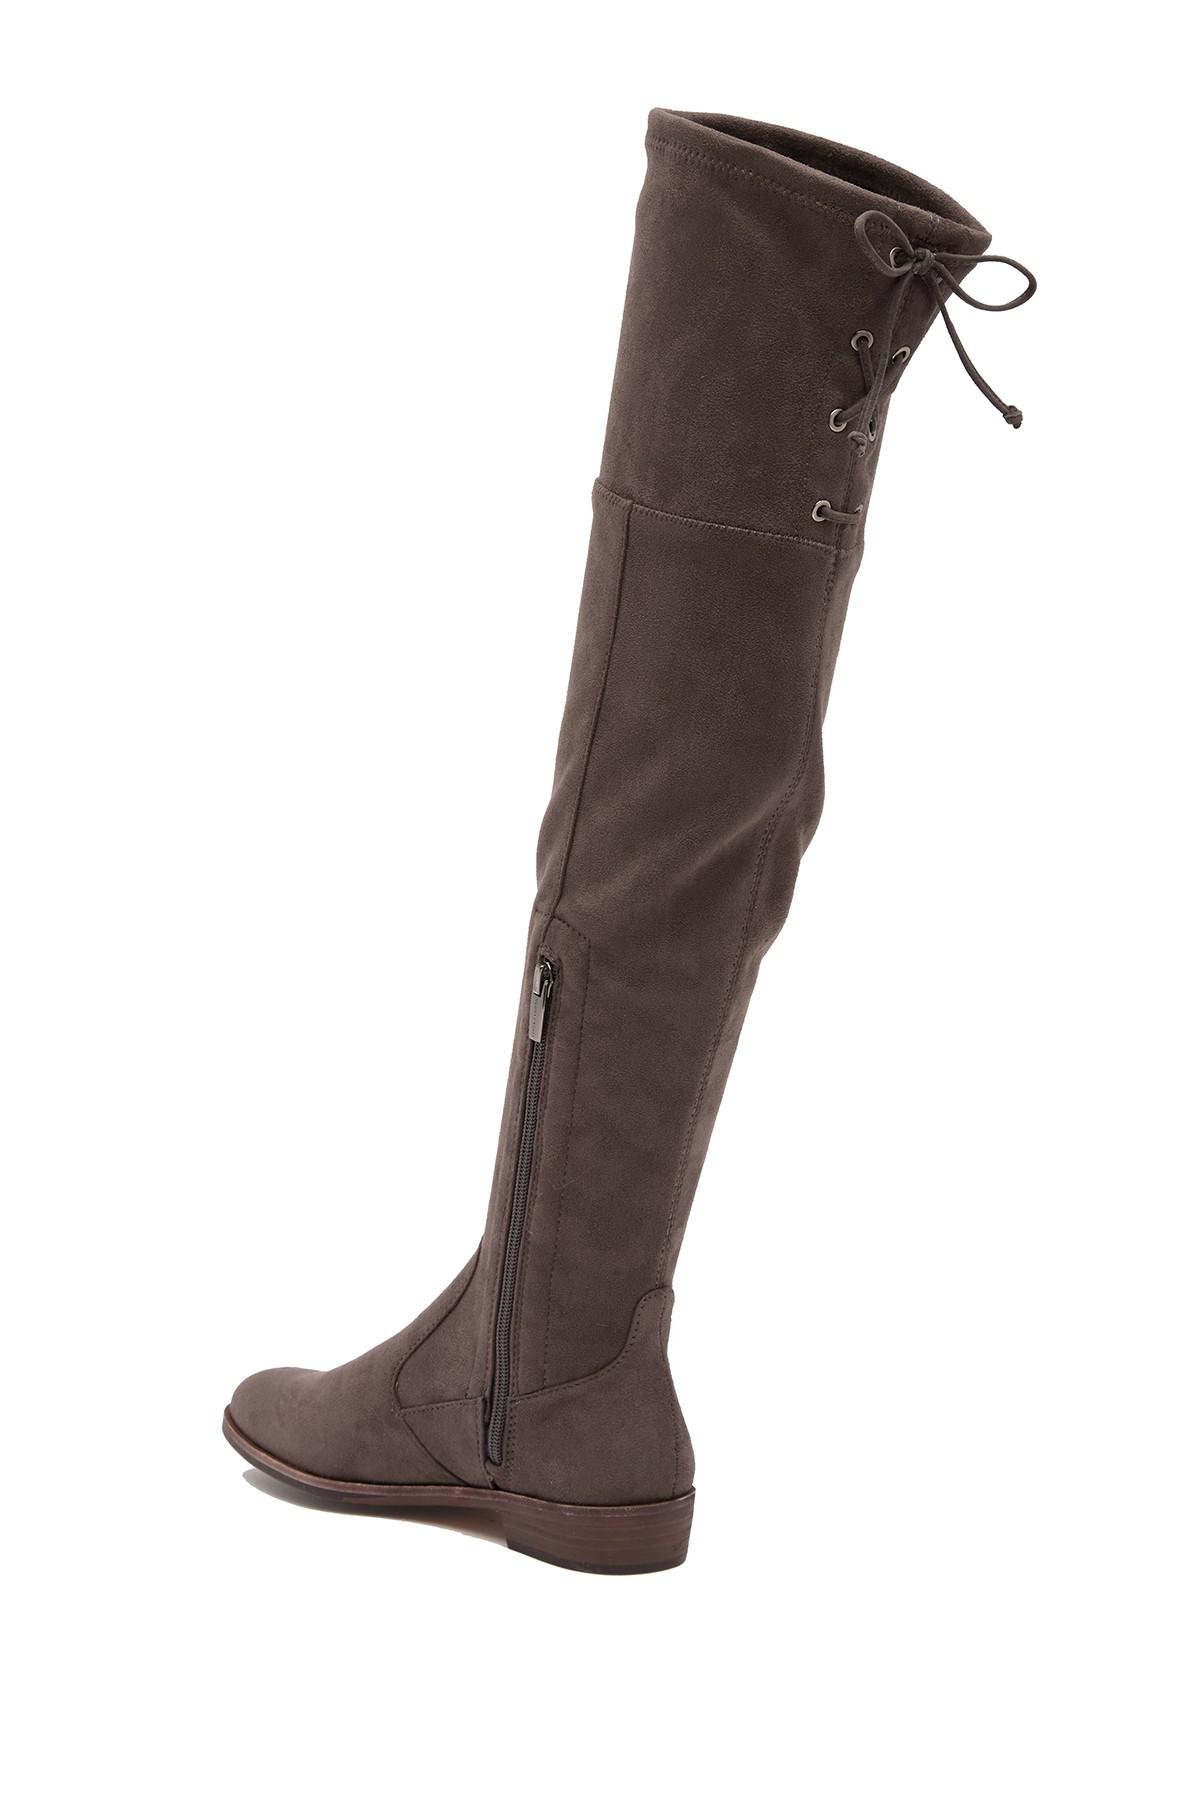 3b76ae0ae83 Vince Camuto - Gray Crisintha Over The Knee Boot - Lyst. View fullscreen